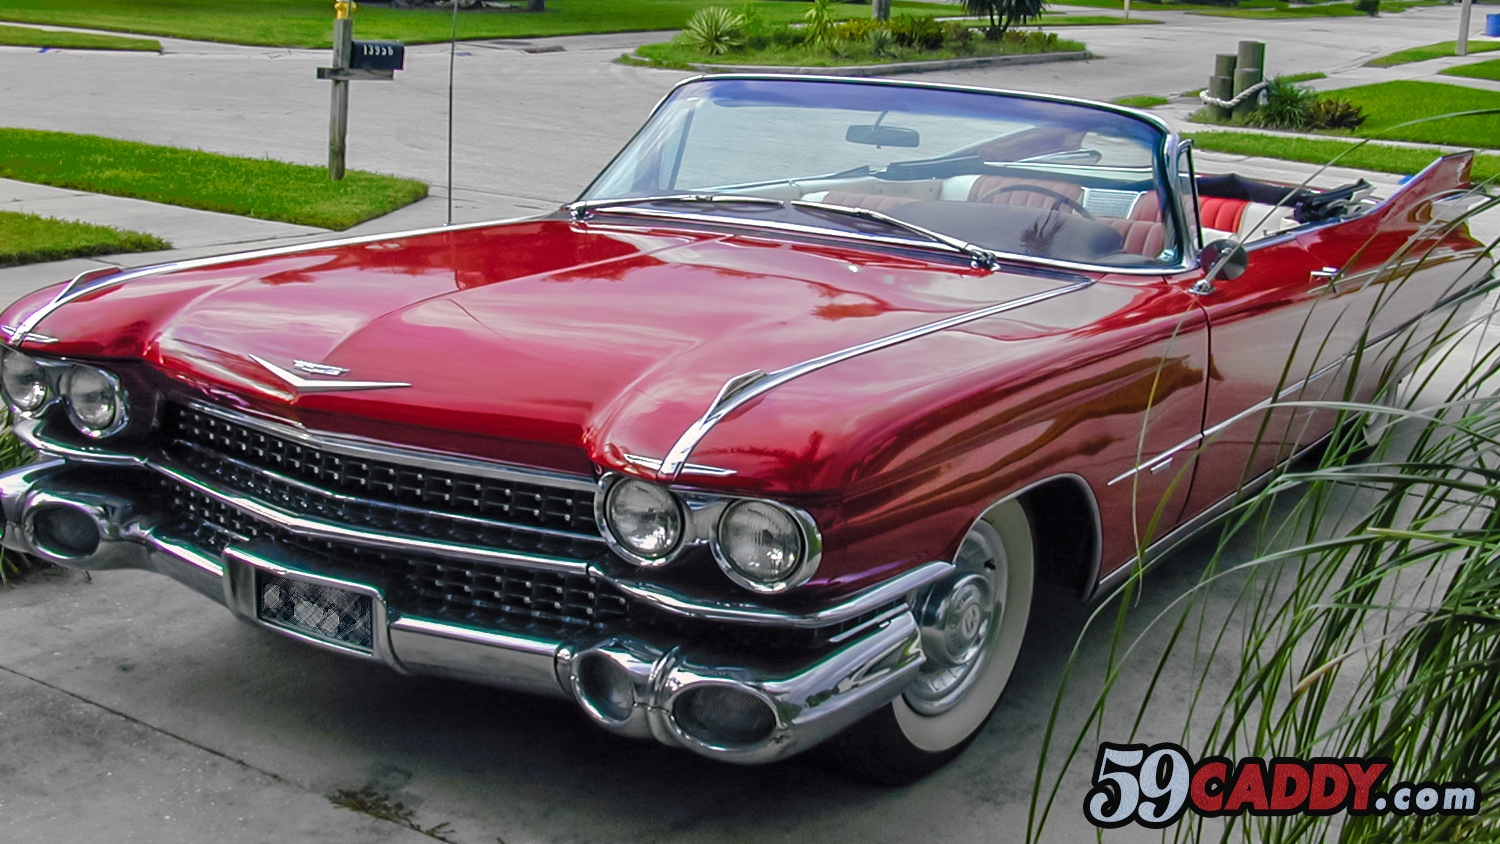 cadillac cars unspecified news convertible for sale classifieds motor hemmings